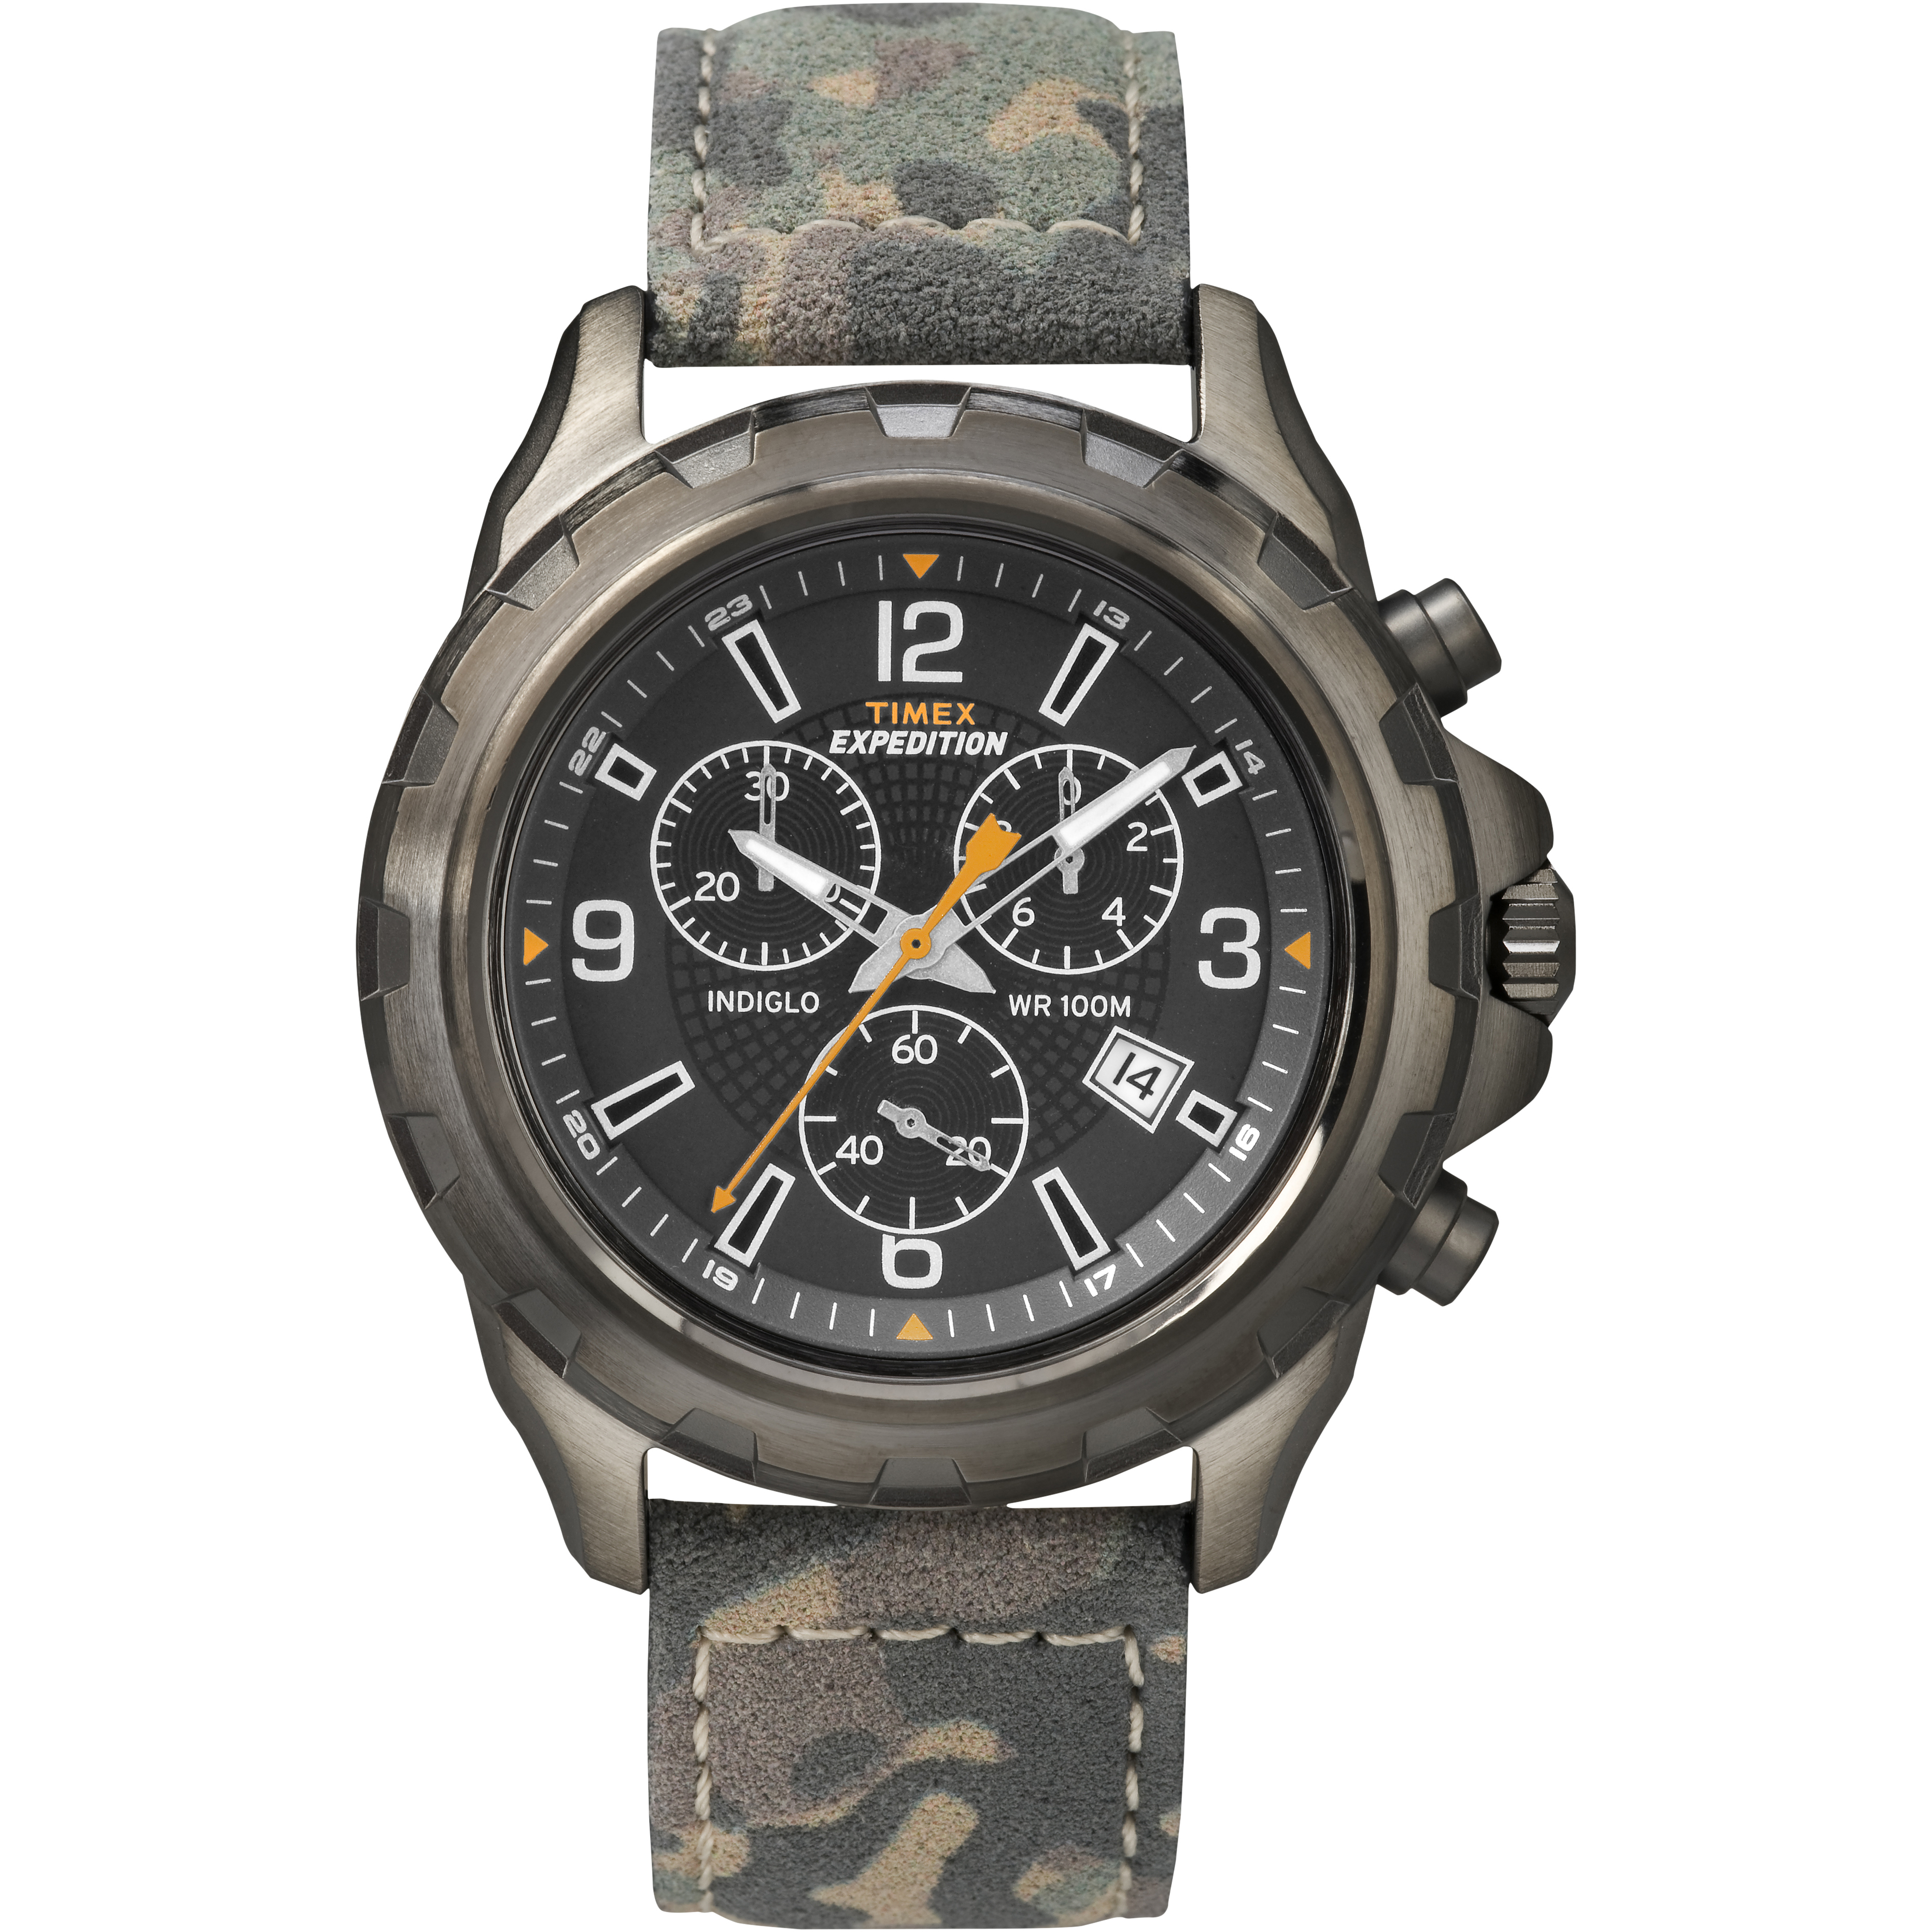 Timex men 39 s expedition rugged chronograph indiglo leather strap outdoor watch for Indiglo watches